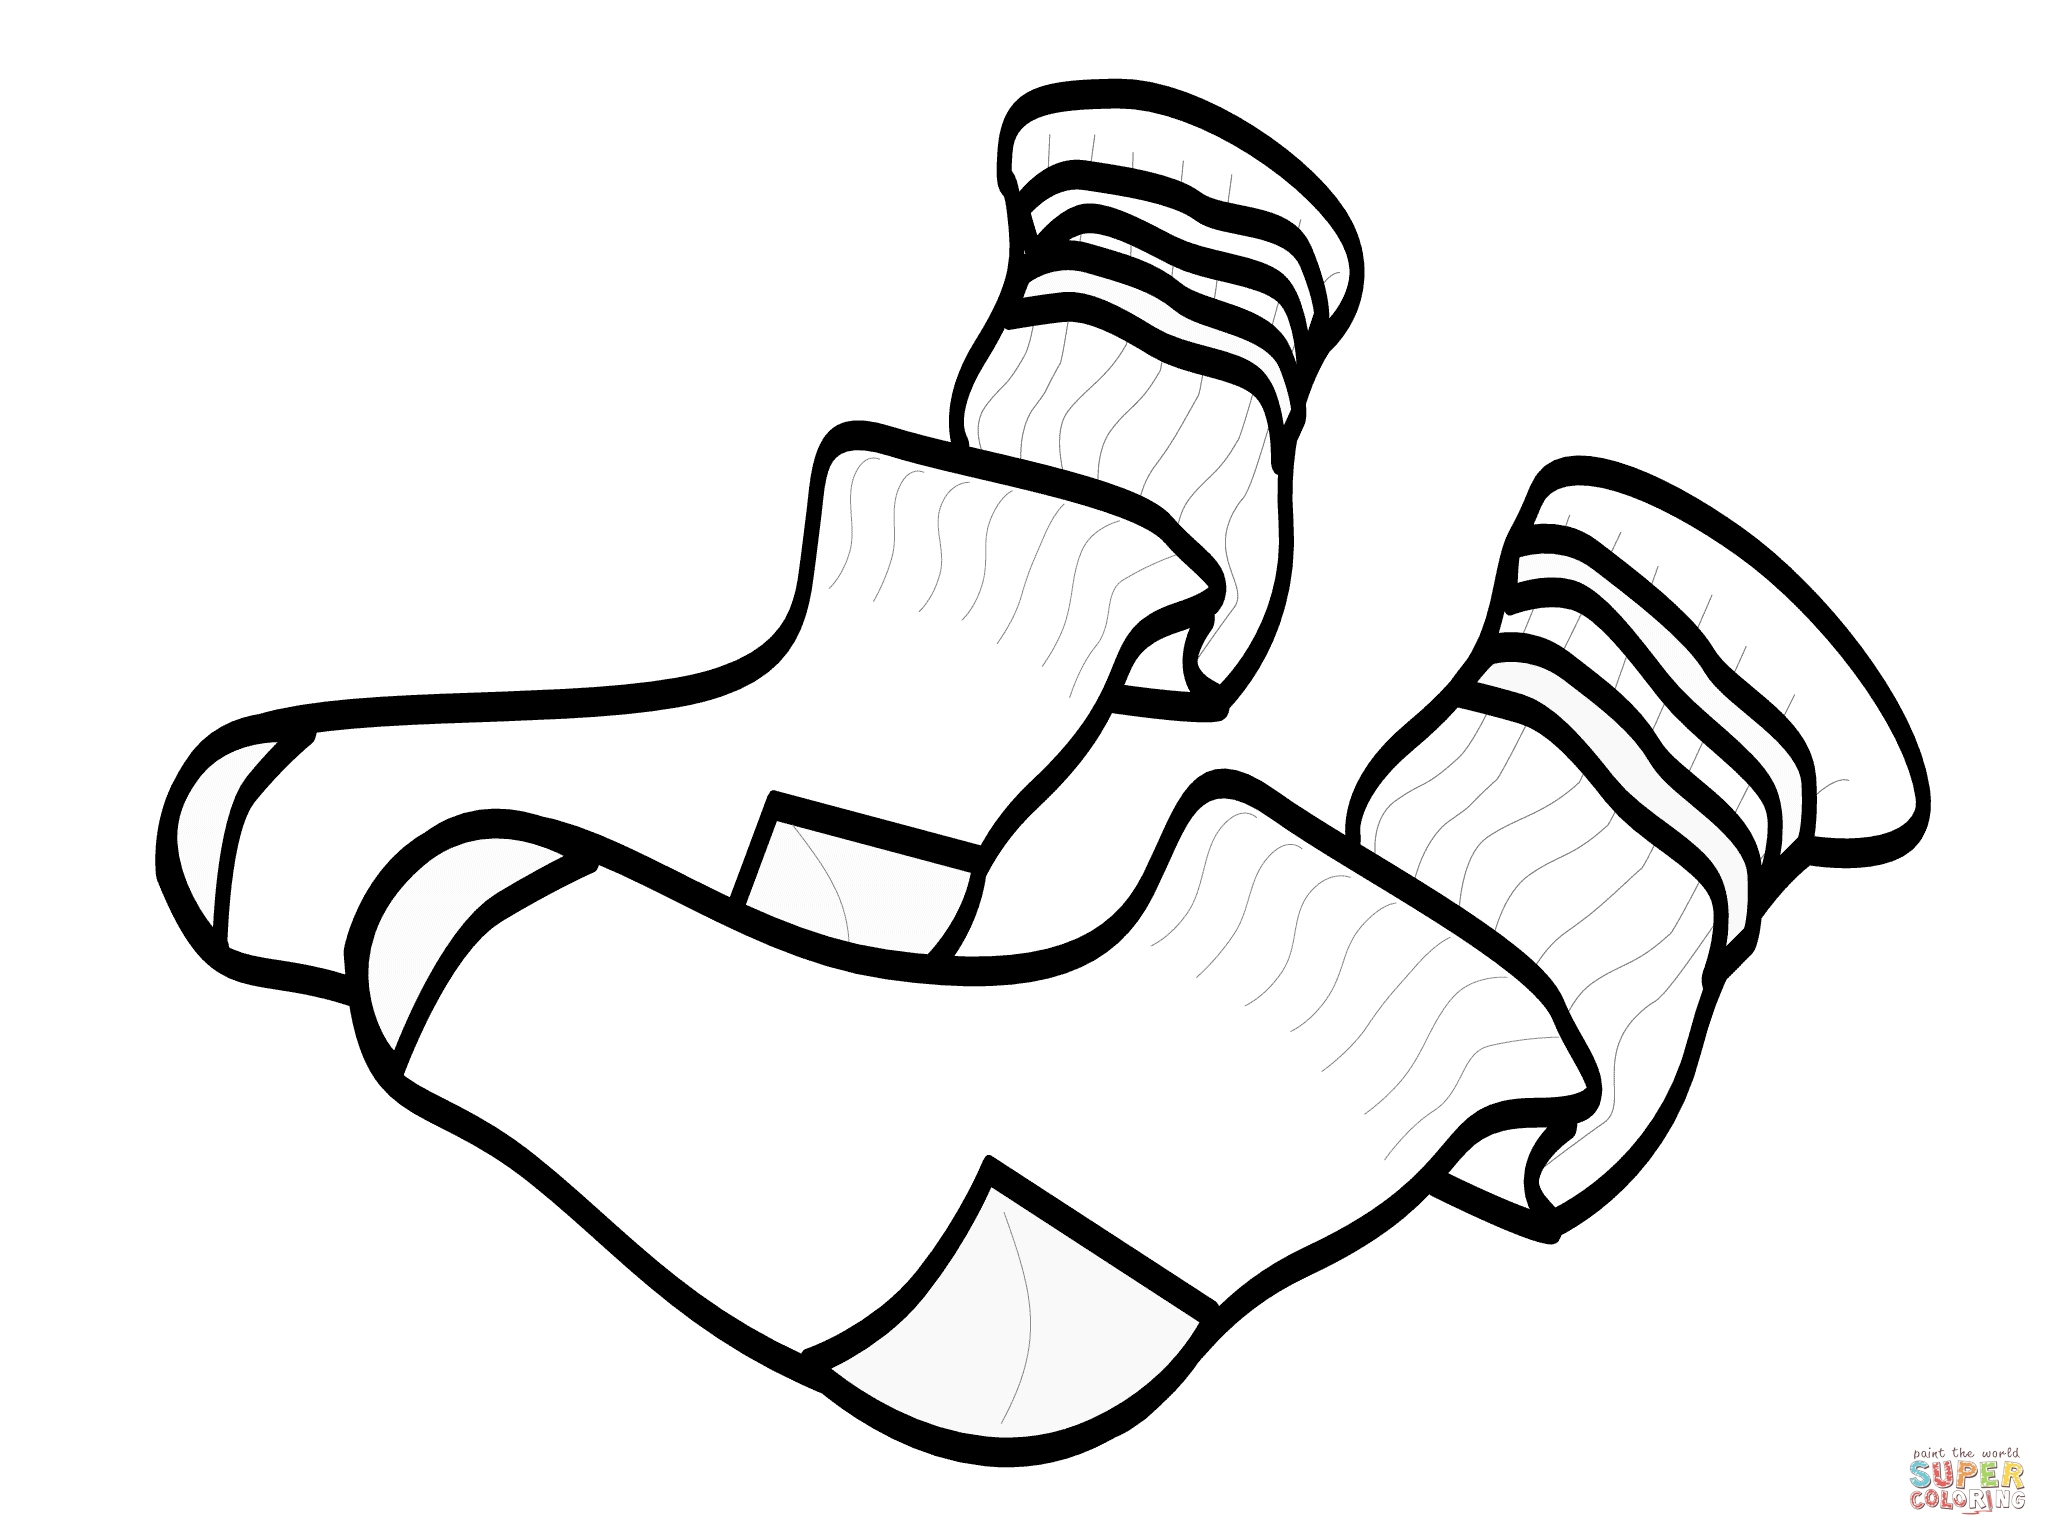 socks coloring page - socks